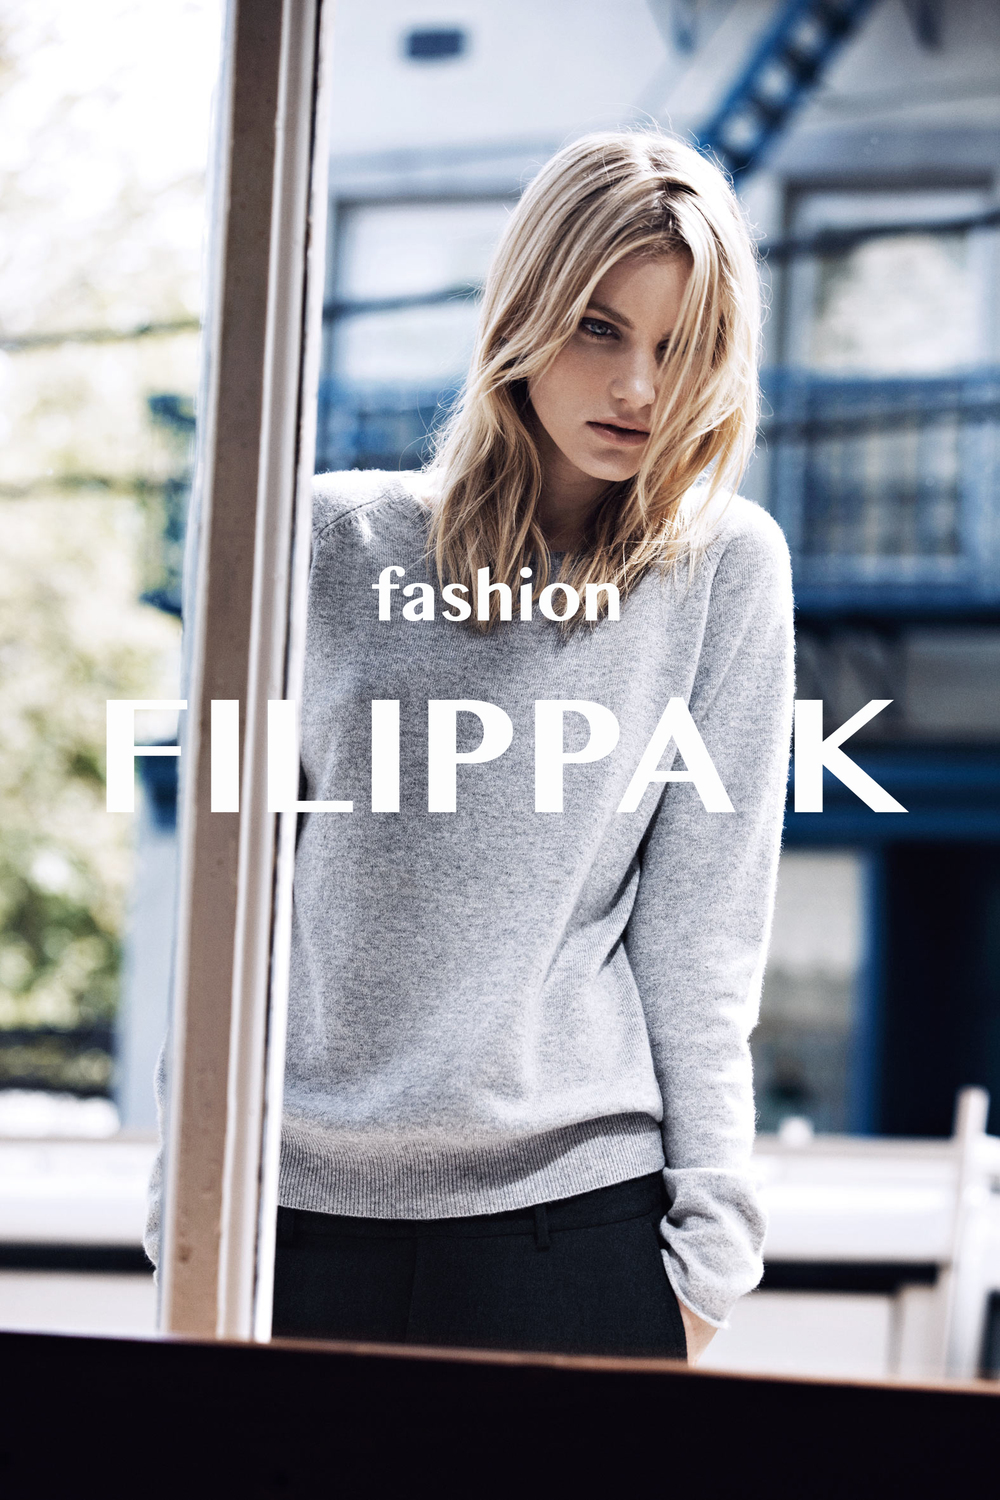 FILIPPA K GIVES CUSTOMERS THE POSSIBILITY TO RENT UNIQUE RUNWAY PIECES STRAIGHT OFF THE CATWALK January 20, 2016